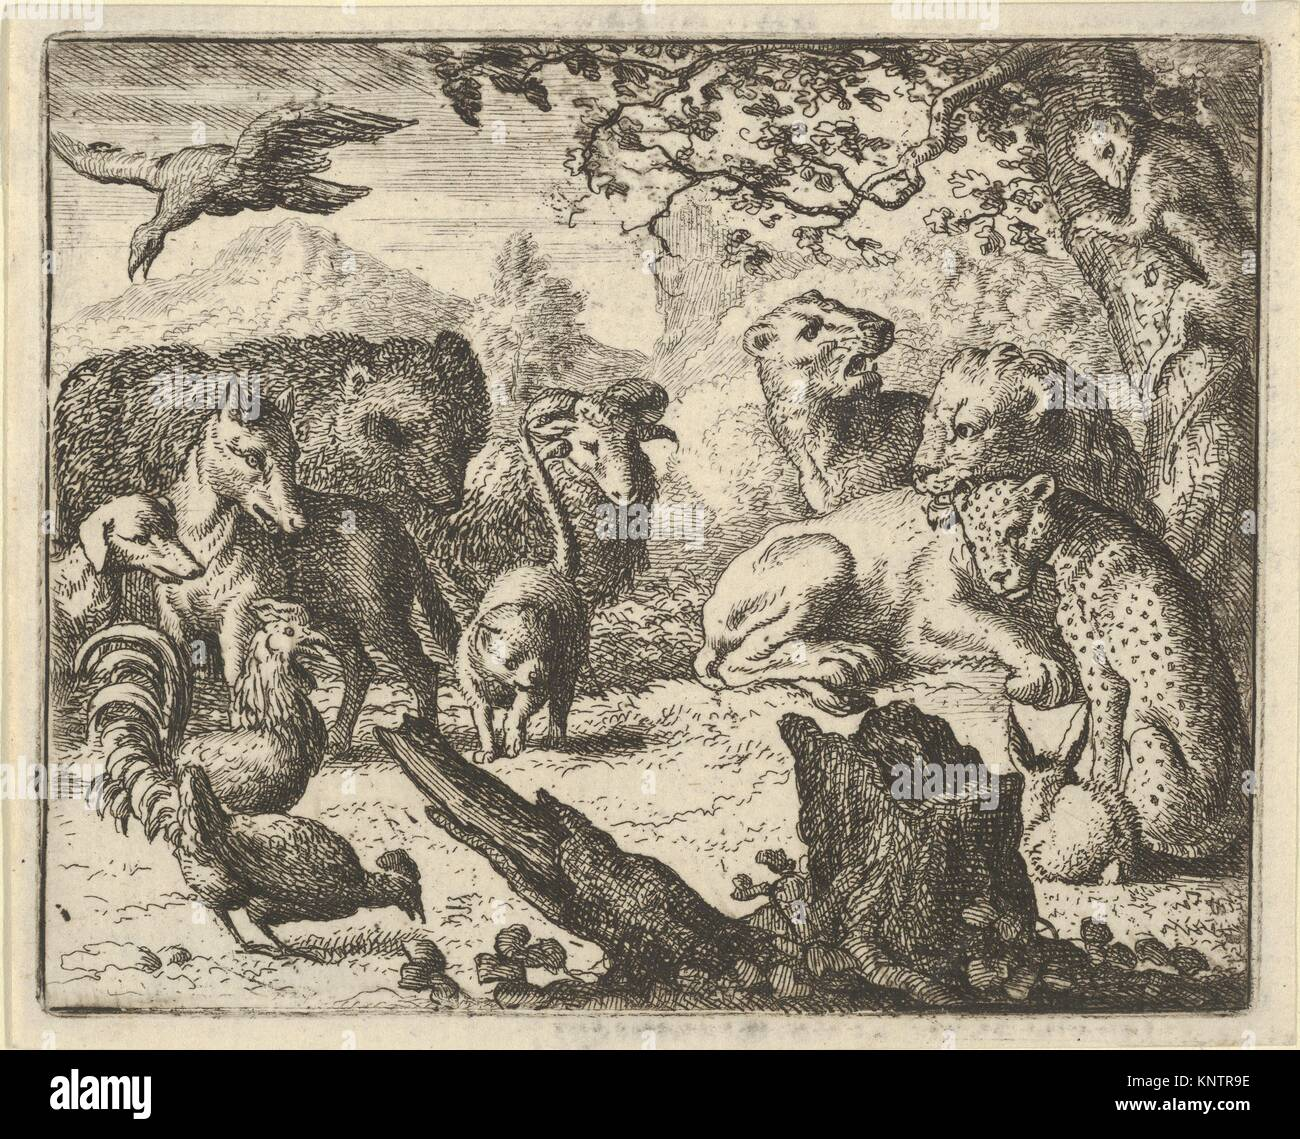 The Lion Announces a Durable Peace to the Animals who Surround Him from Hendrick van Alcmar's Renard The Fox. - Stock Image